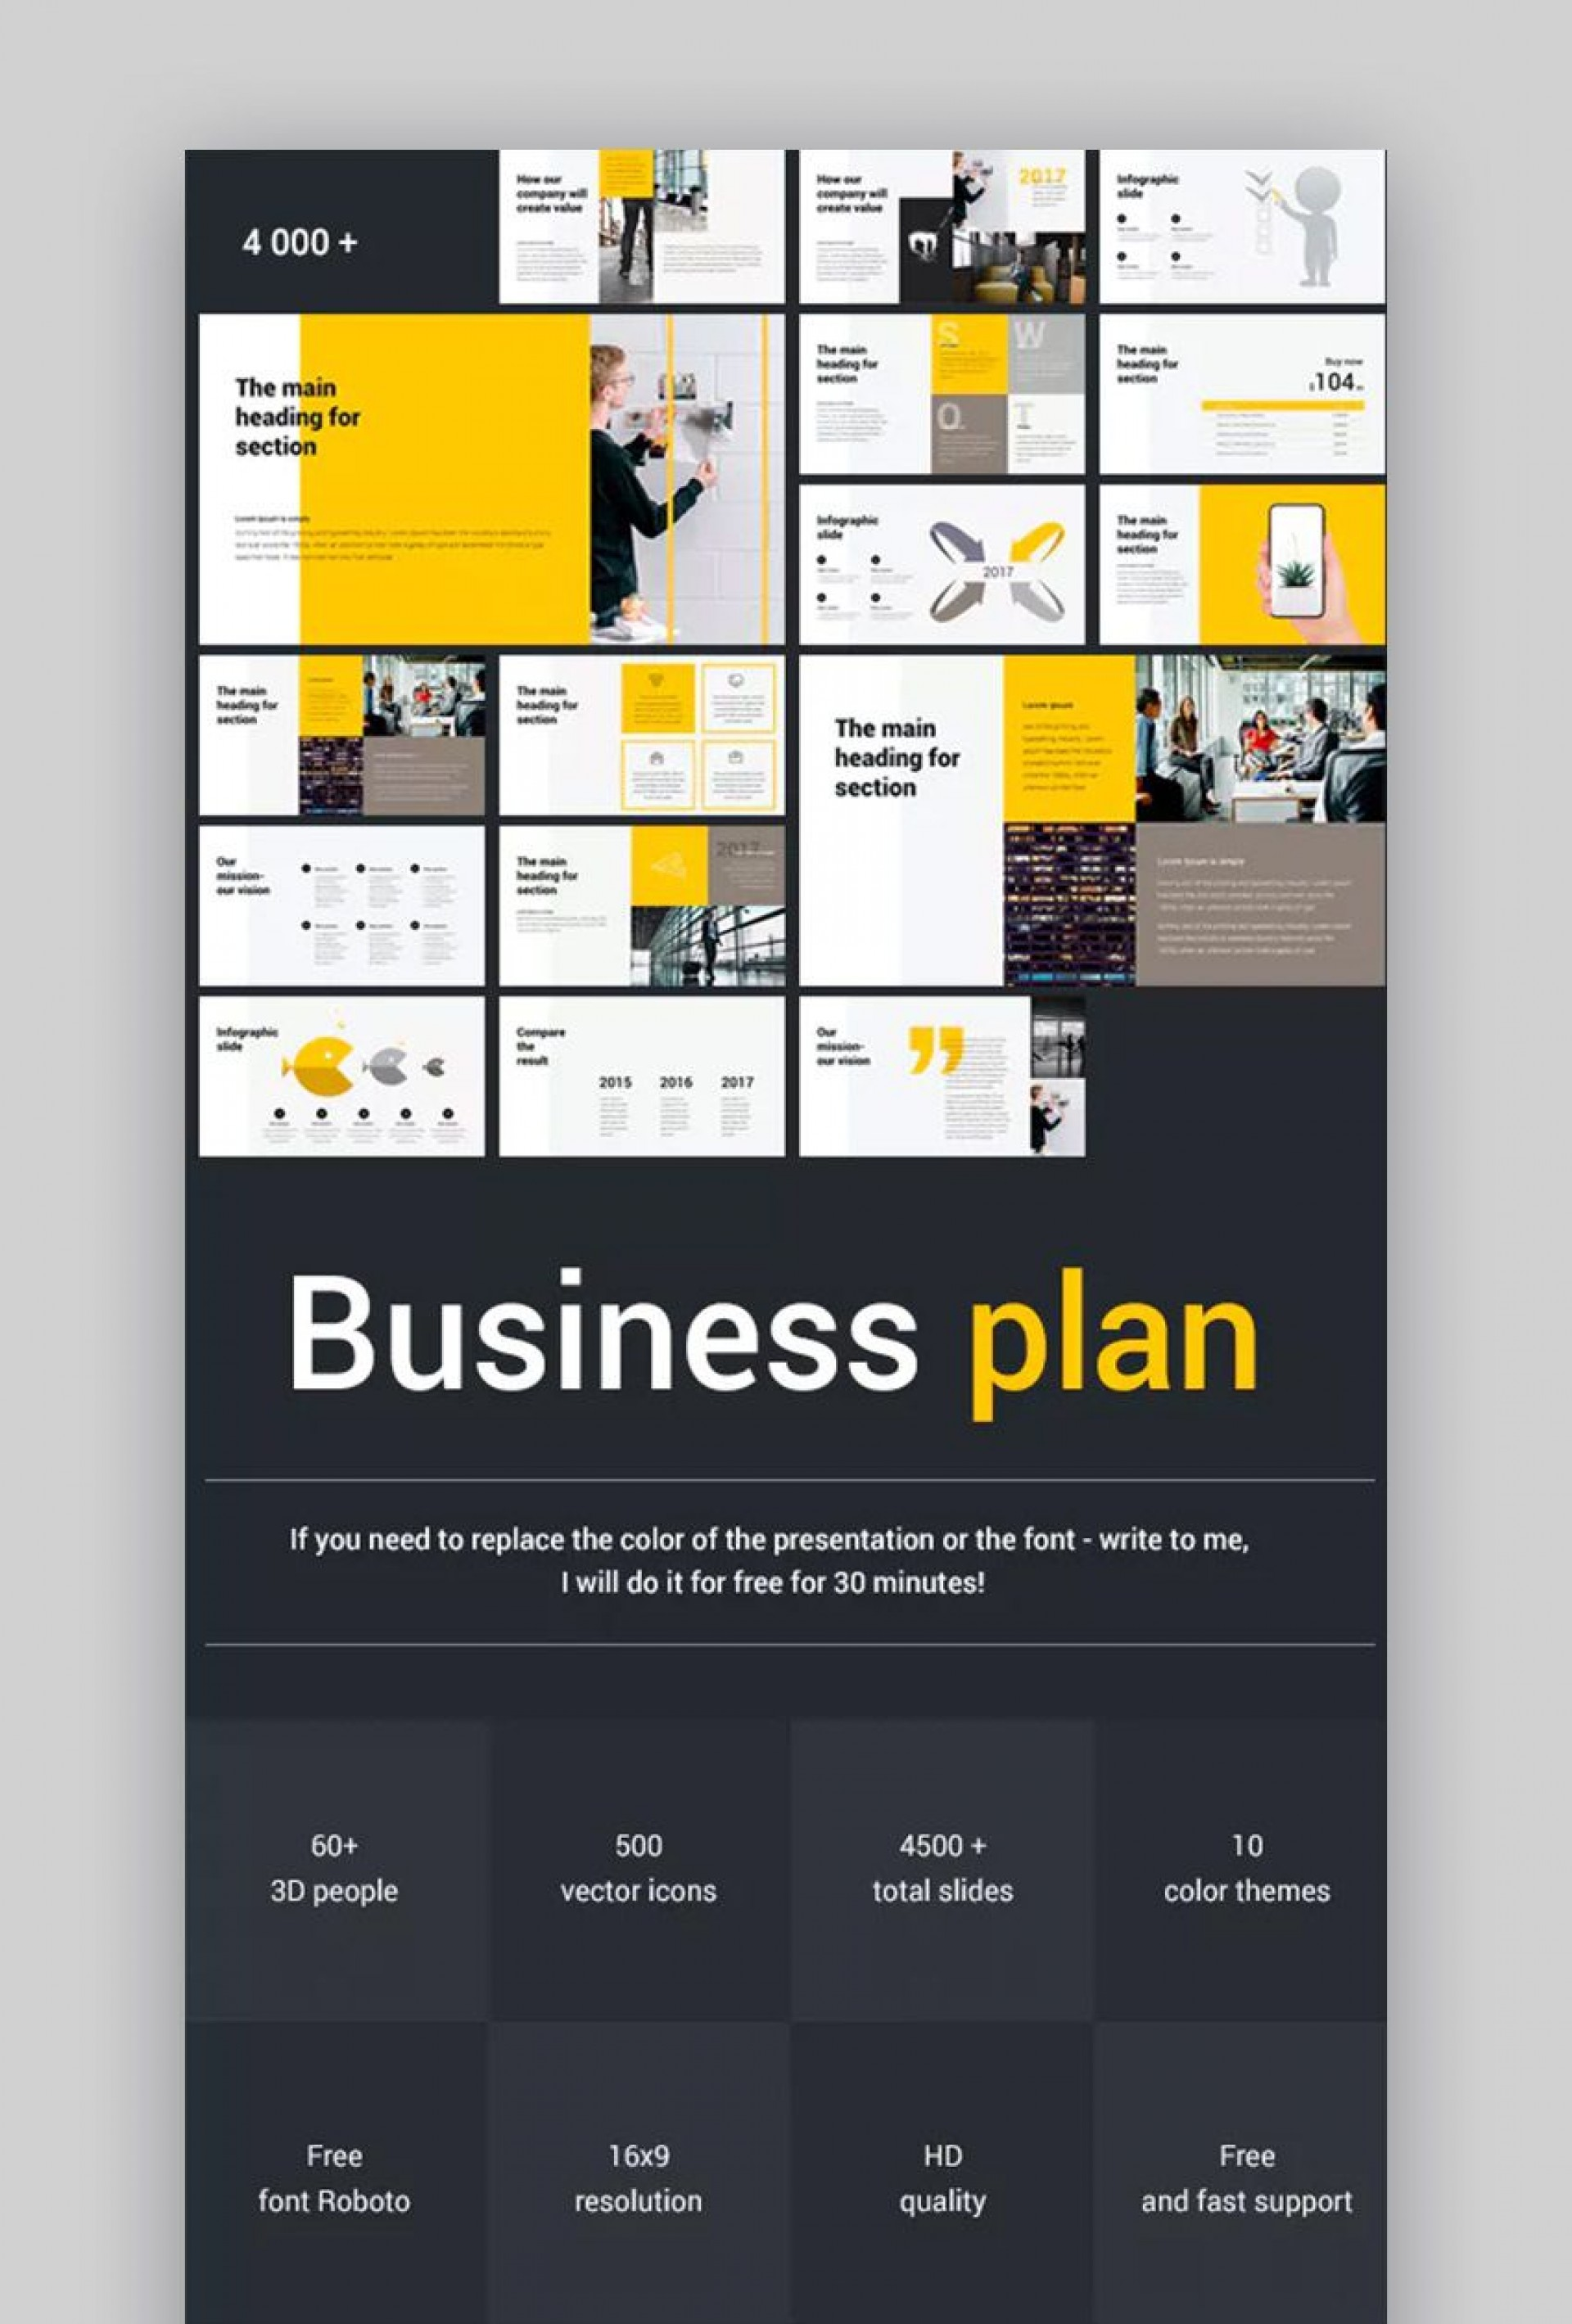 003 Fantastic Marketing Busines Plan Template Free Example  For Company Digital1920